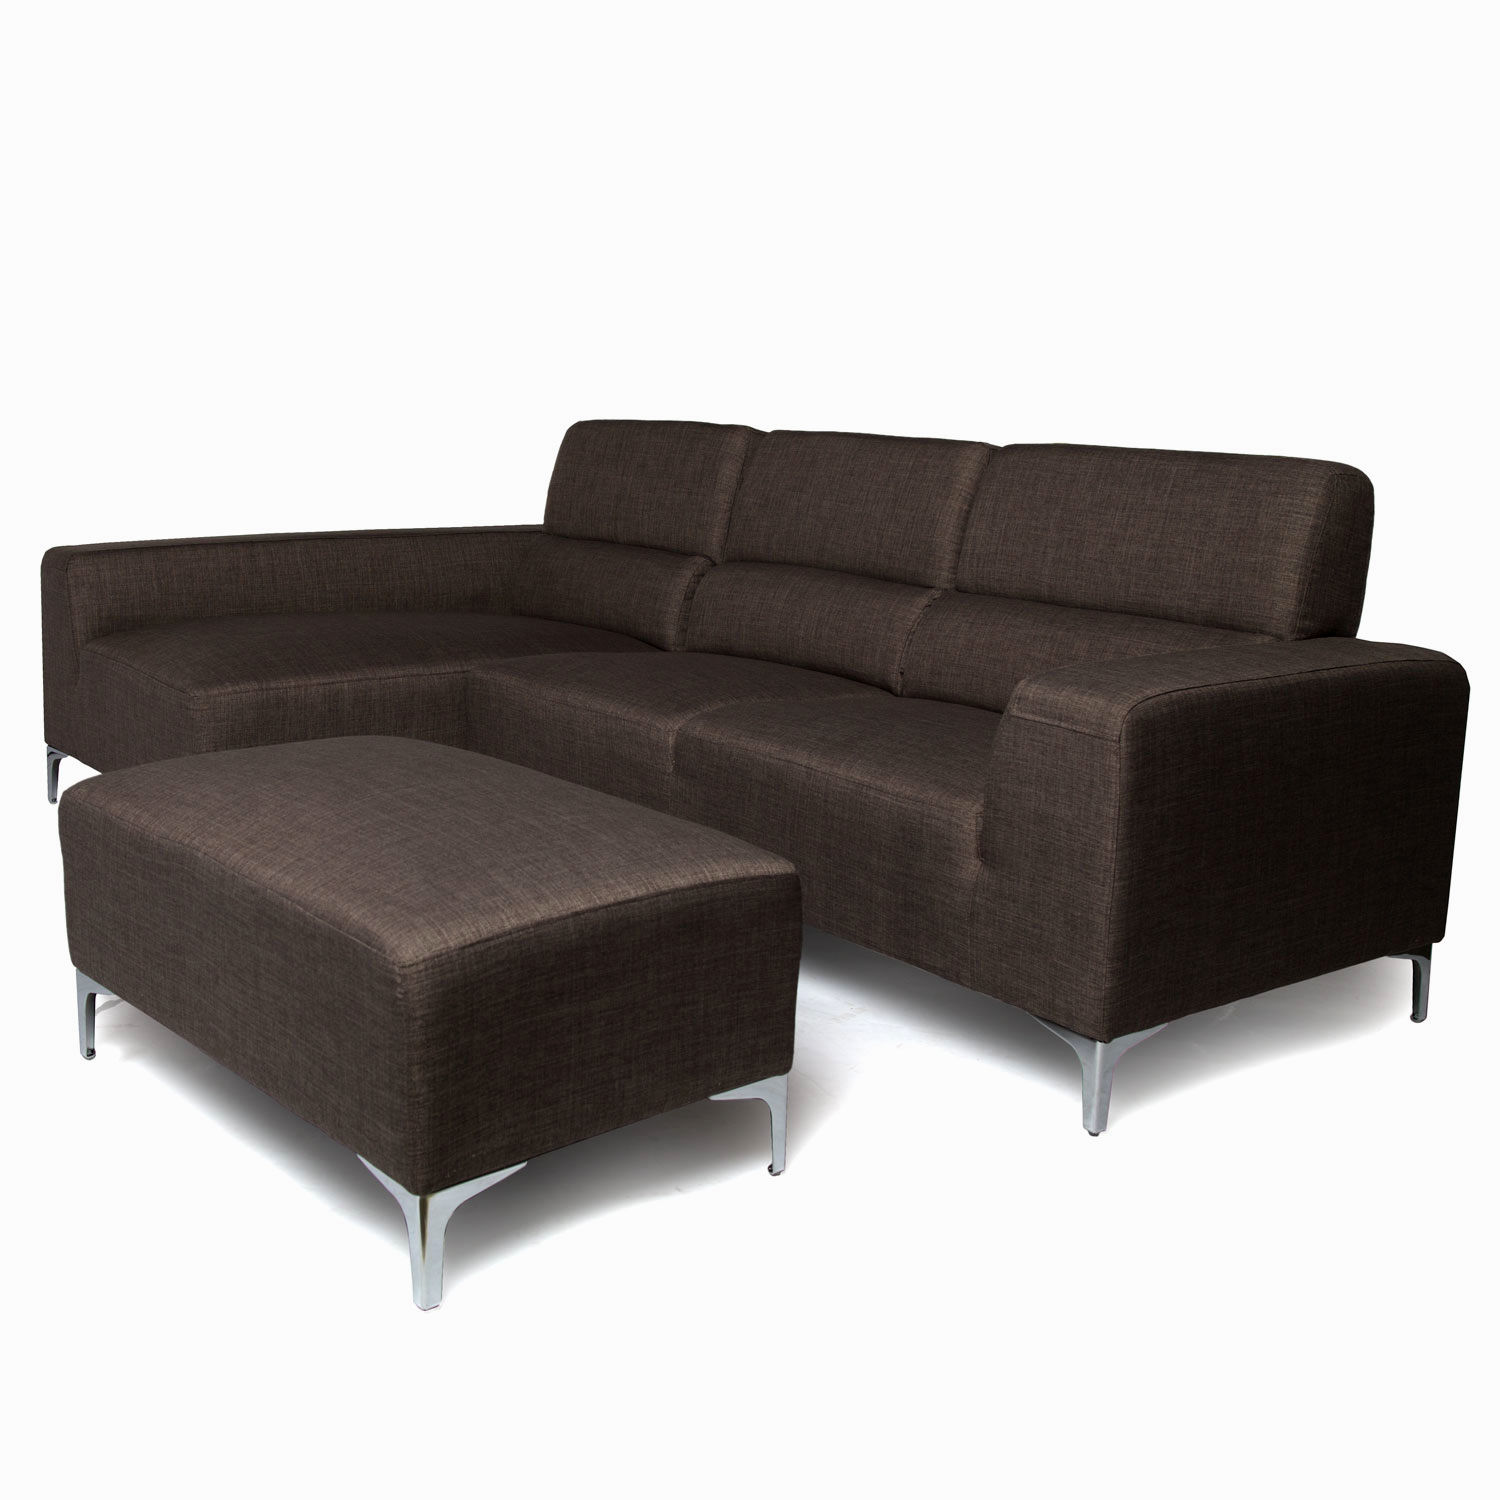 awesome small sectional sofa cheap online-Incredible Small Sectional sofa Cheap Image